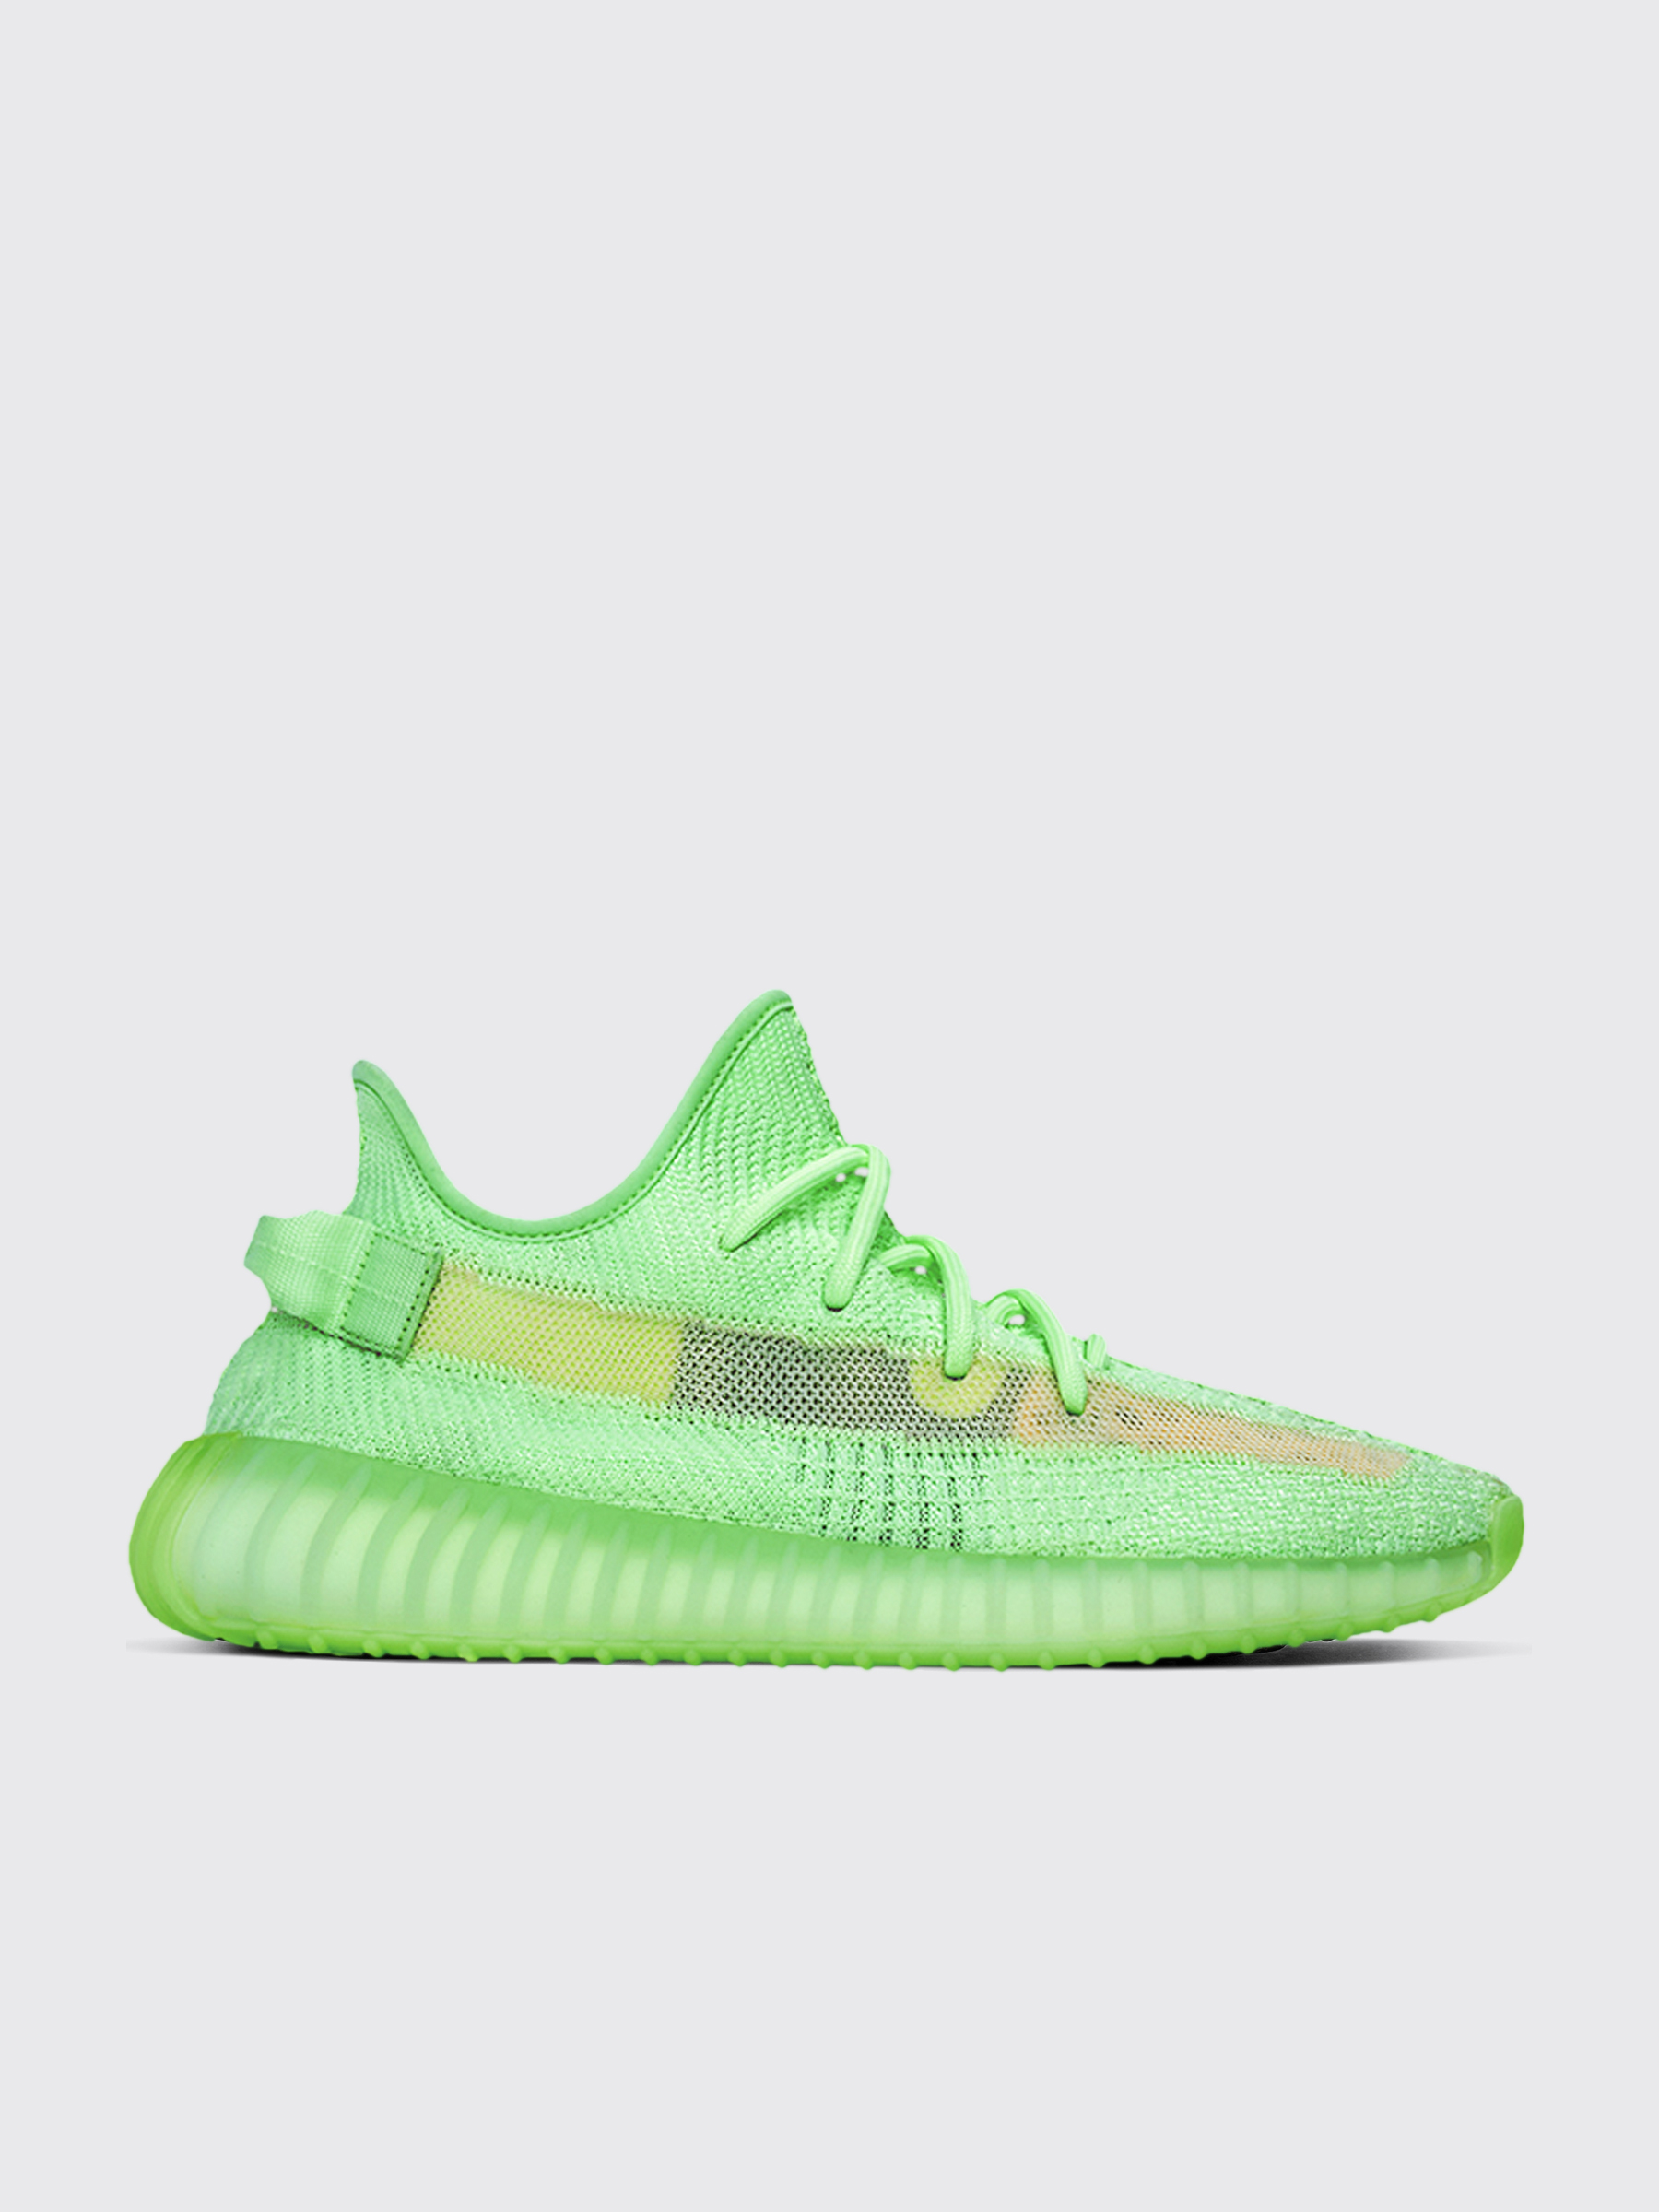 official photos 6947c ce5fe Très Bien - adidas Yeezy Boost 350 V2 Glow